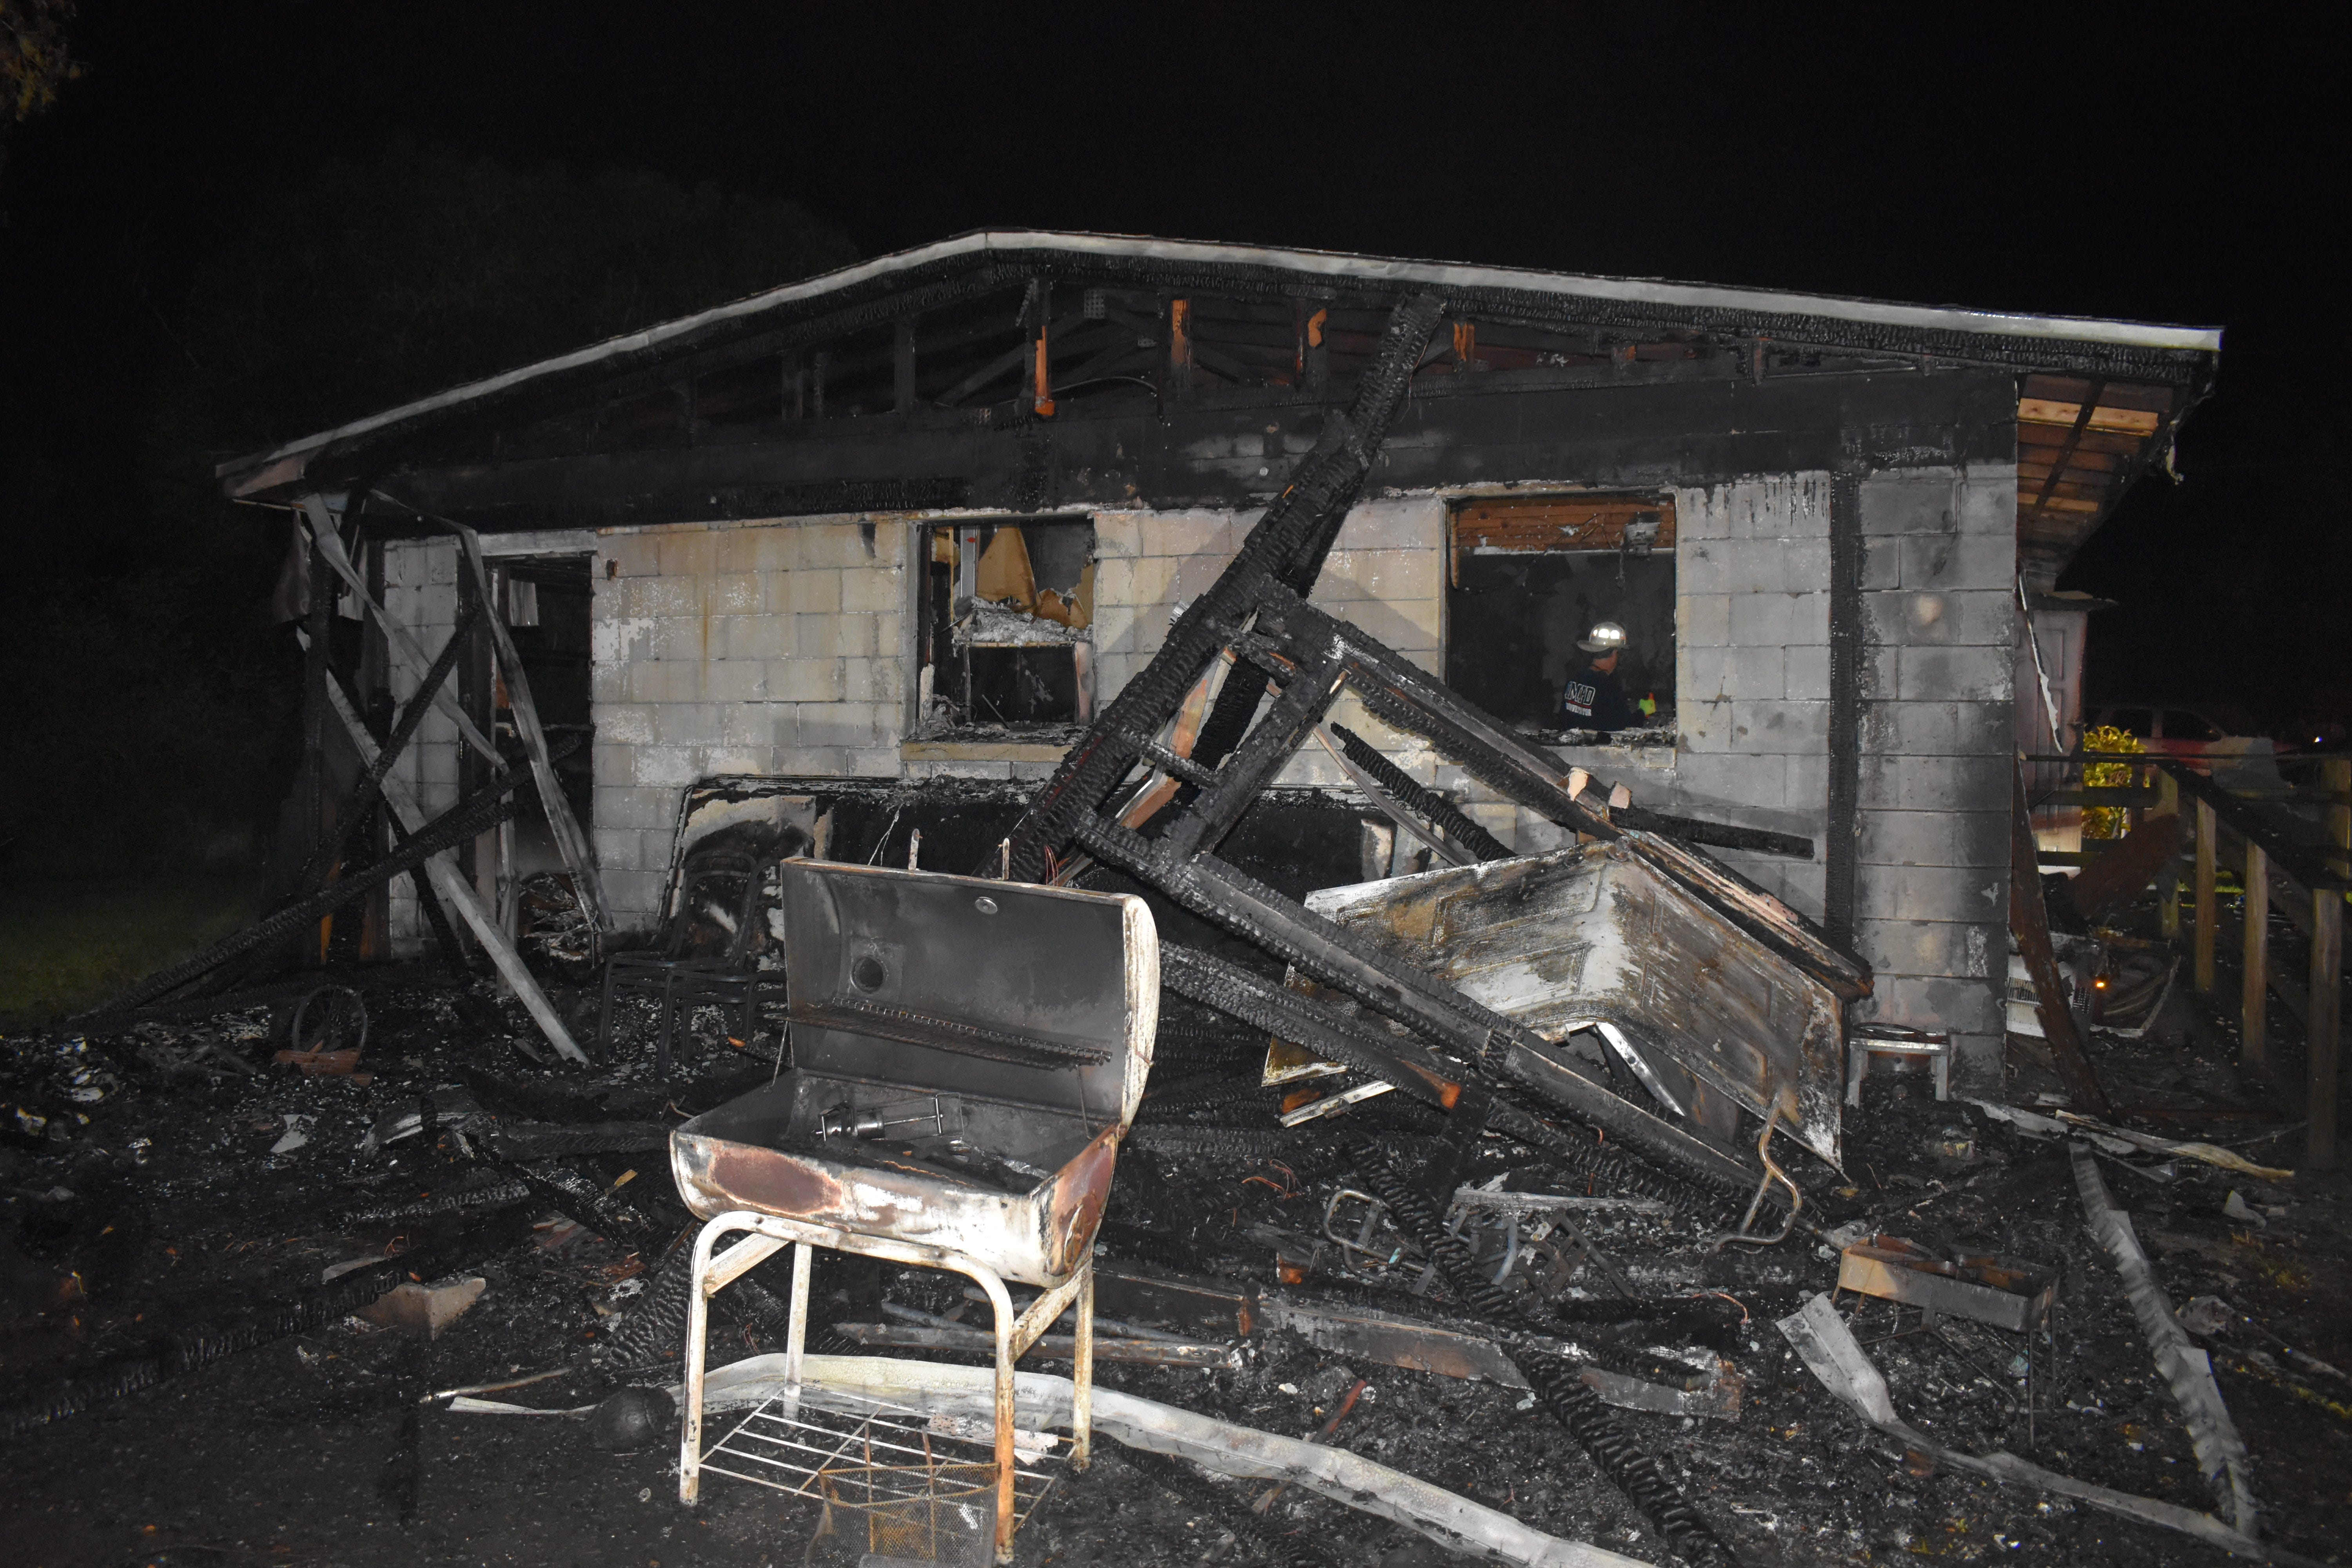 Harlem Heights fire destroys home; firefighters help save belongings dear to residents 3